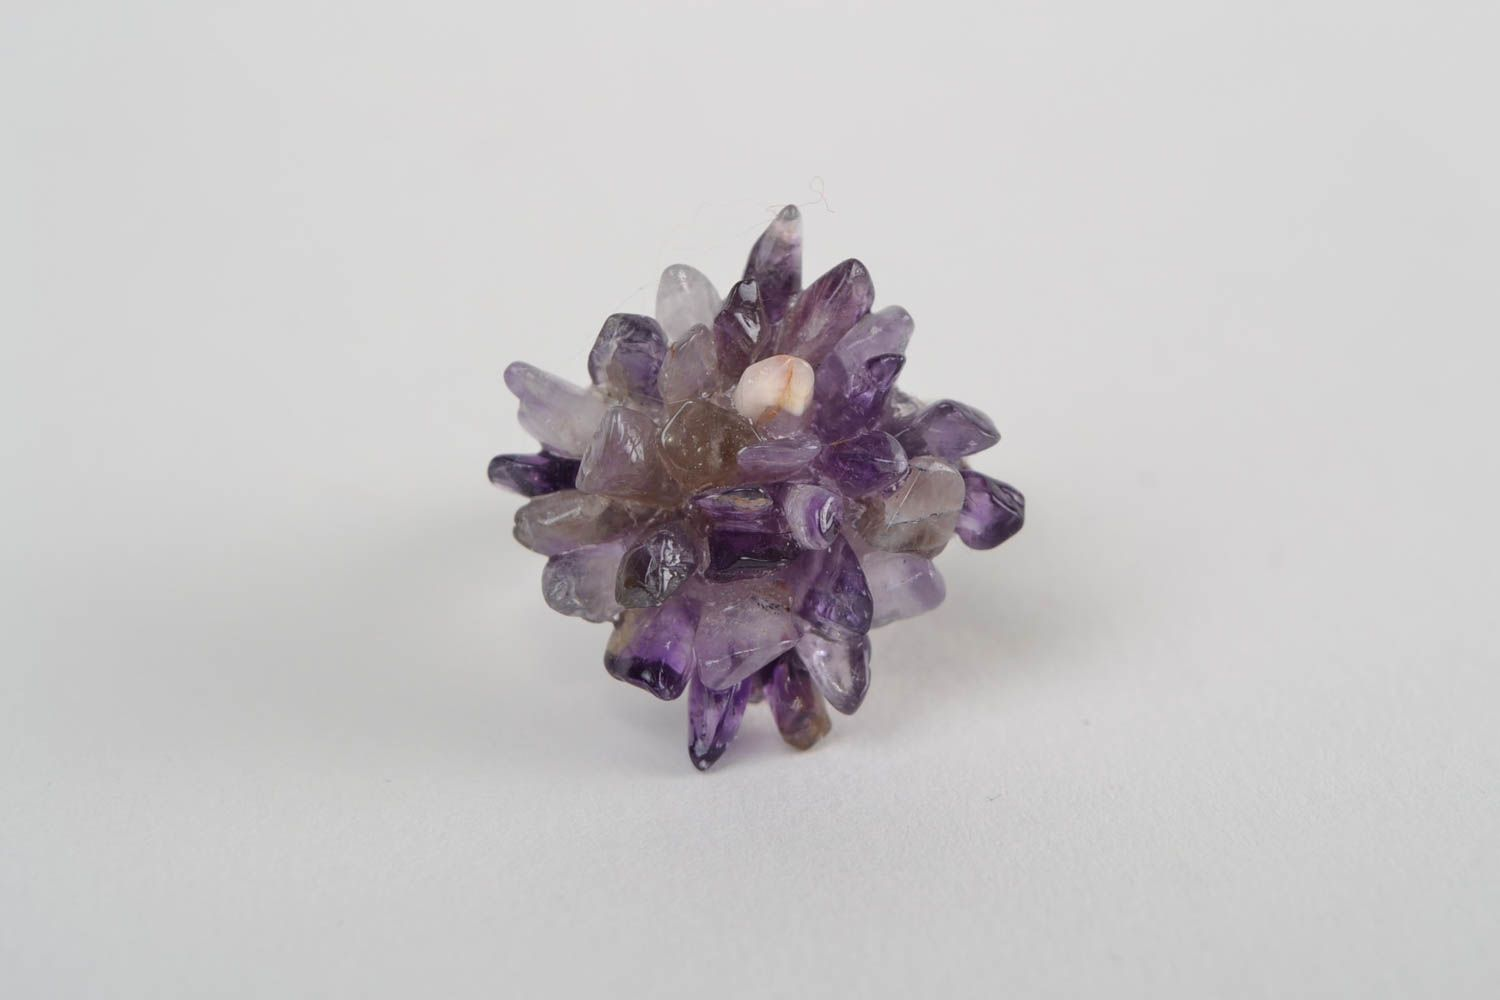 Square-shaped ring with natural stone amethyst beautiful handmade accessory photo 4